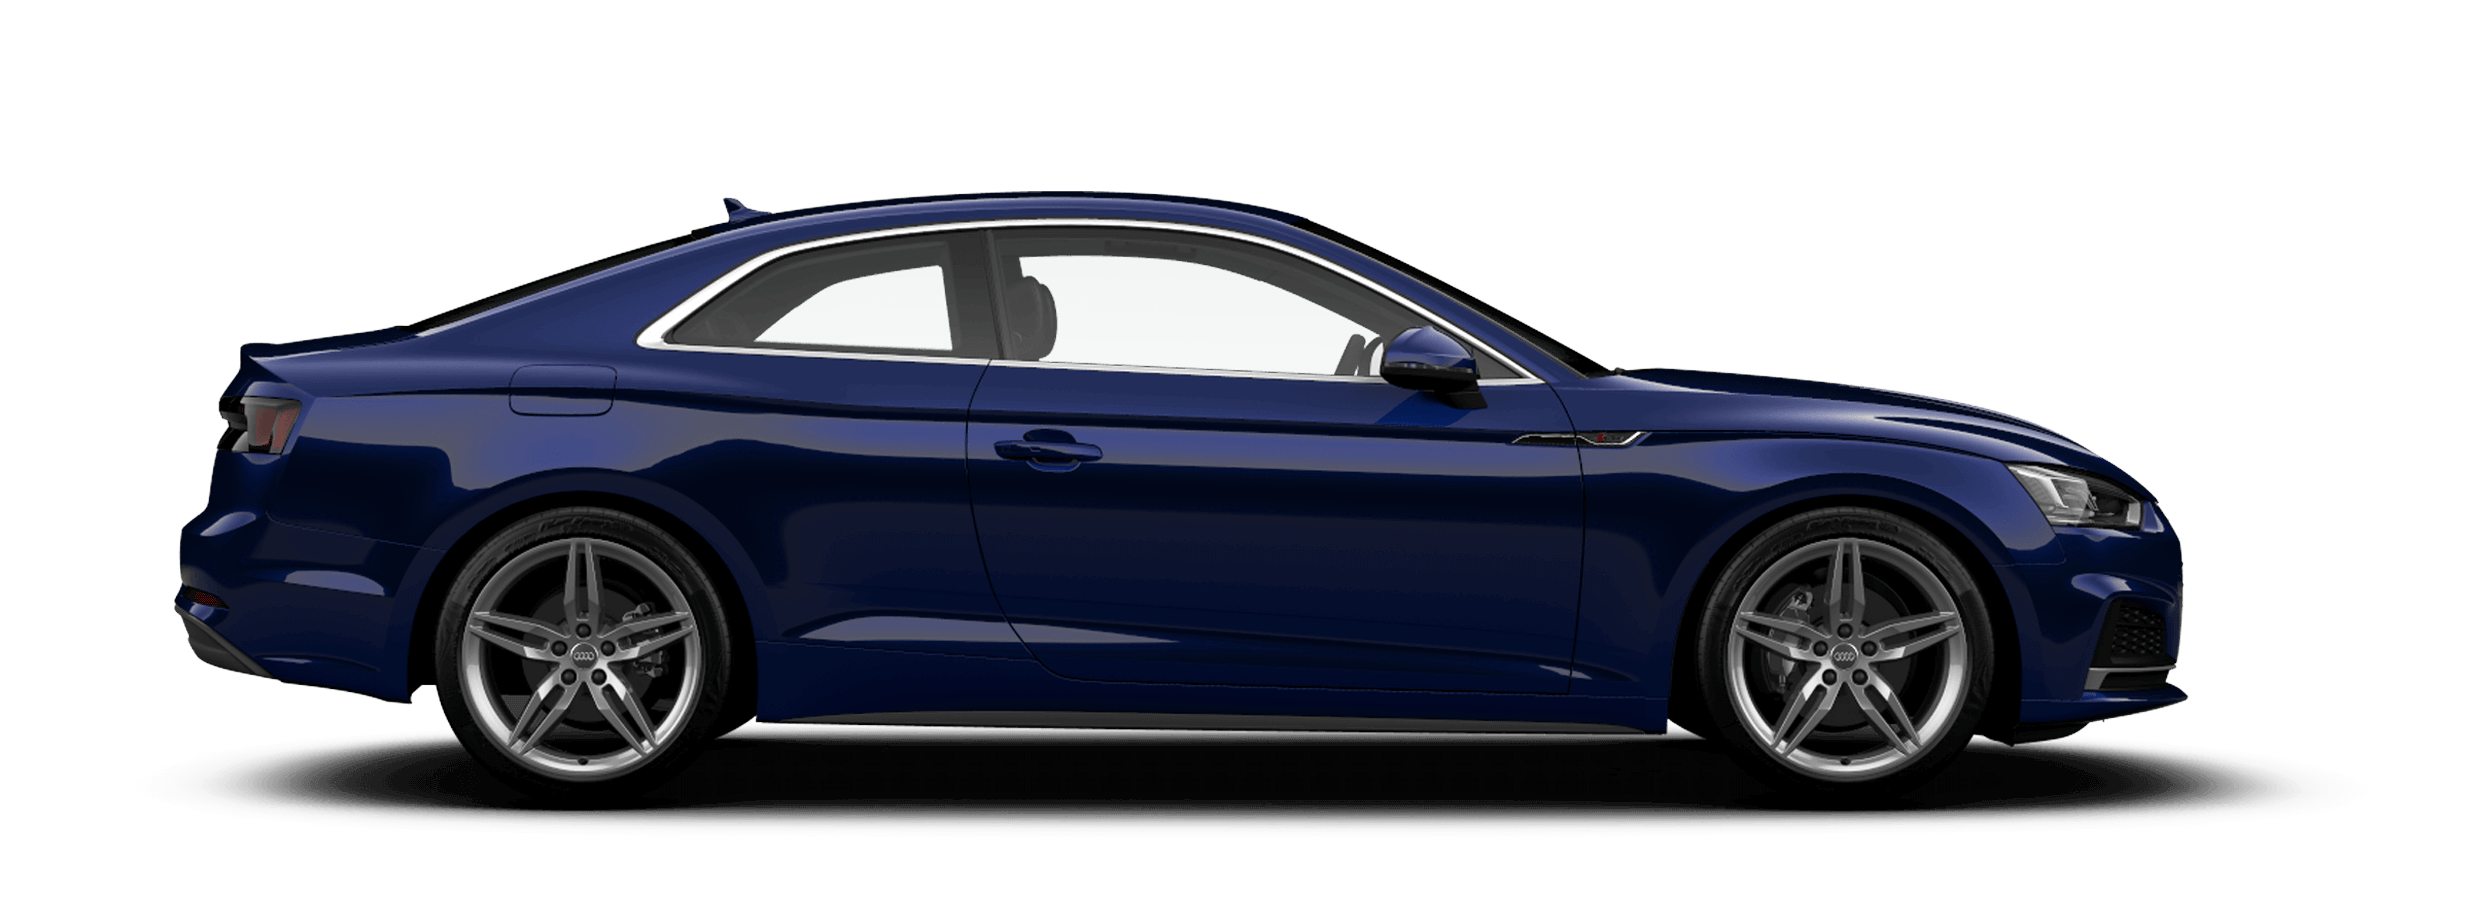 https://bluesky-cogcms.cdn.imgeng.in/media/54477/rs-5-coupe.png